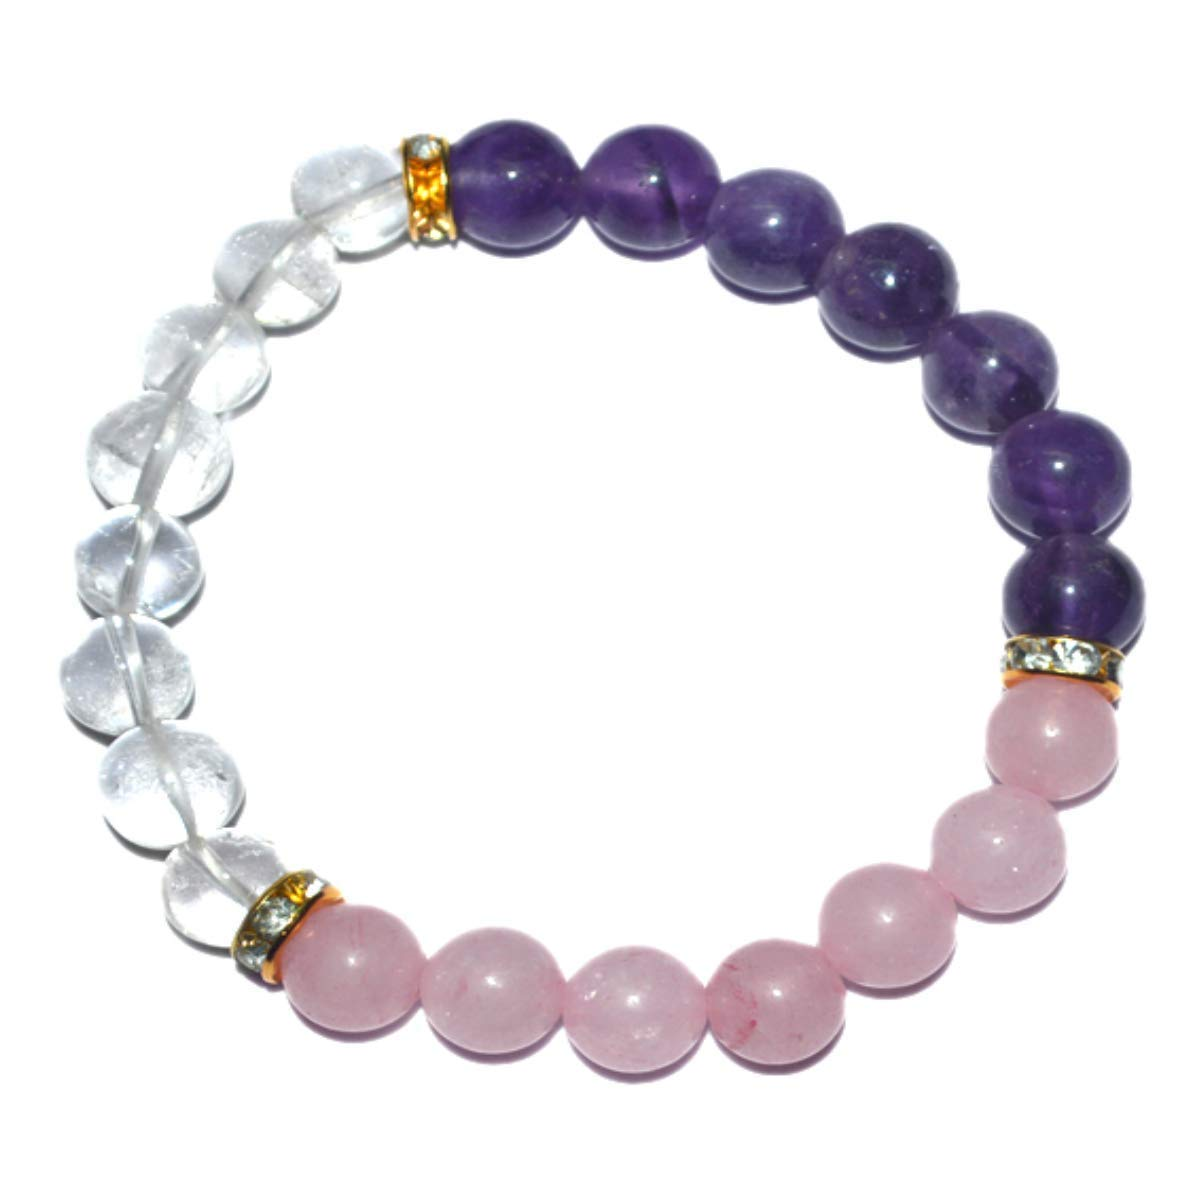 Gemstone Bracelet – 8mm Bead Anxiety Insomnia Relief Natural Stone Rose Quartz Amethyst Crystal Bracelet for – Chakra Healing Reiki Yoga Mediation Elastic Rope Bangle Beaded Bracelets